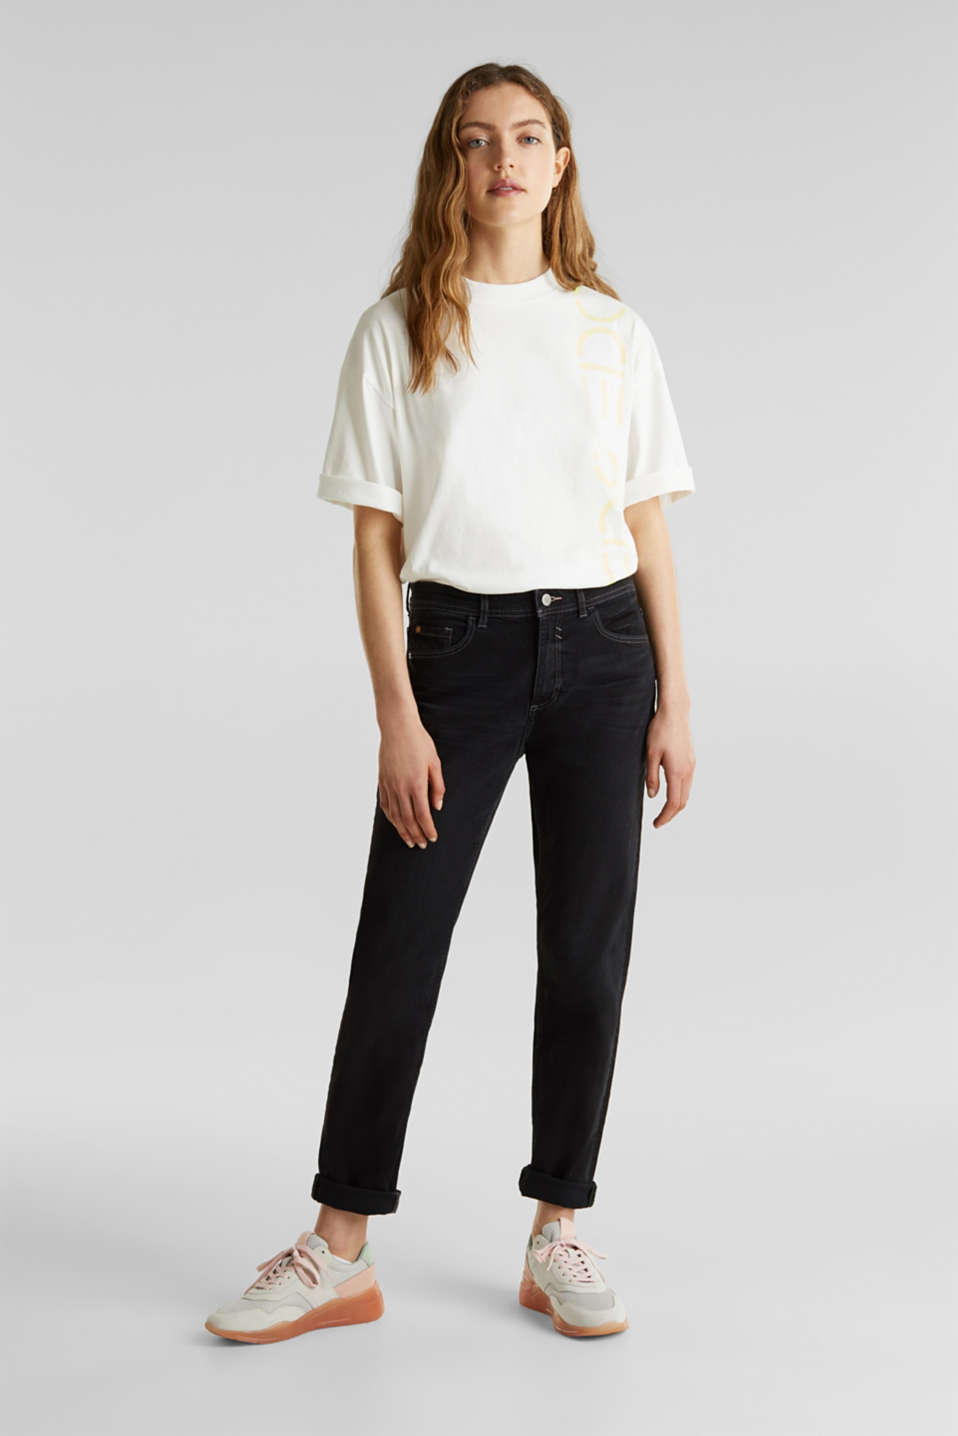 edc - Stretch jeans with a new, relaxed fit